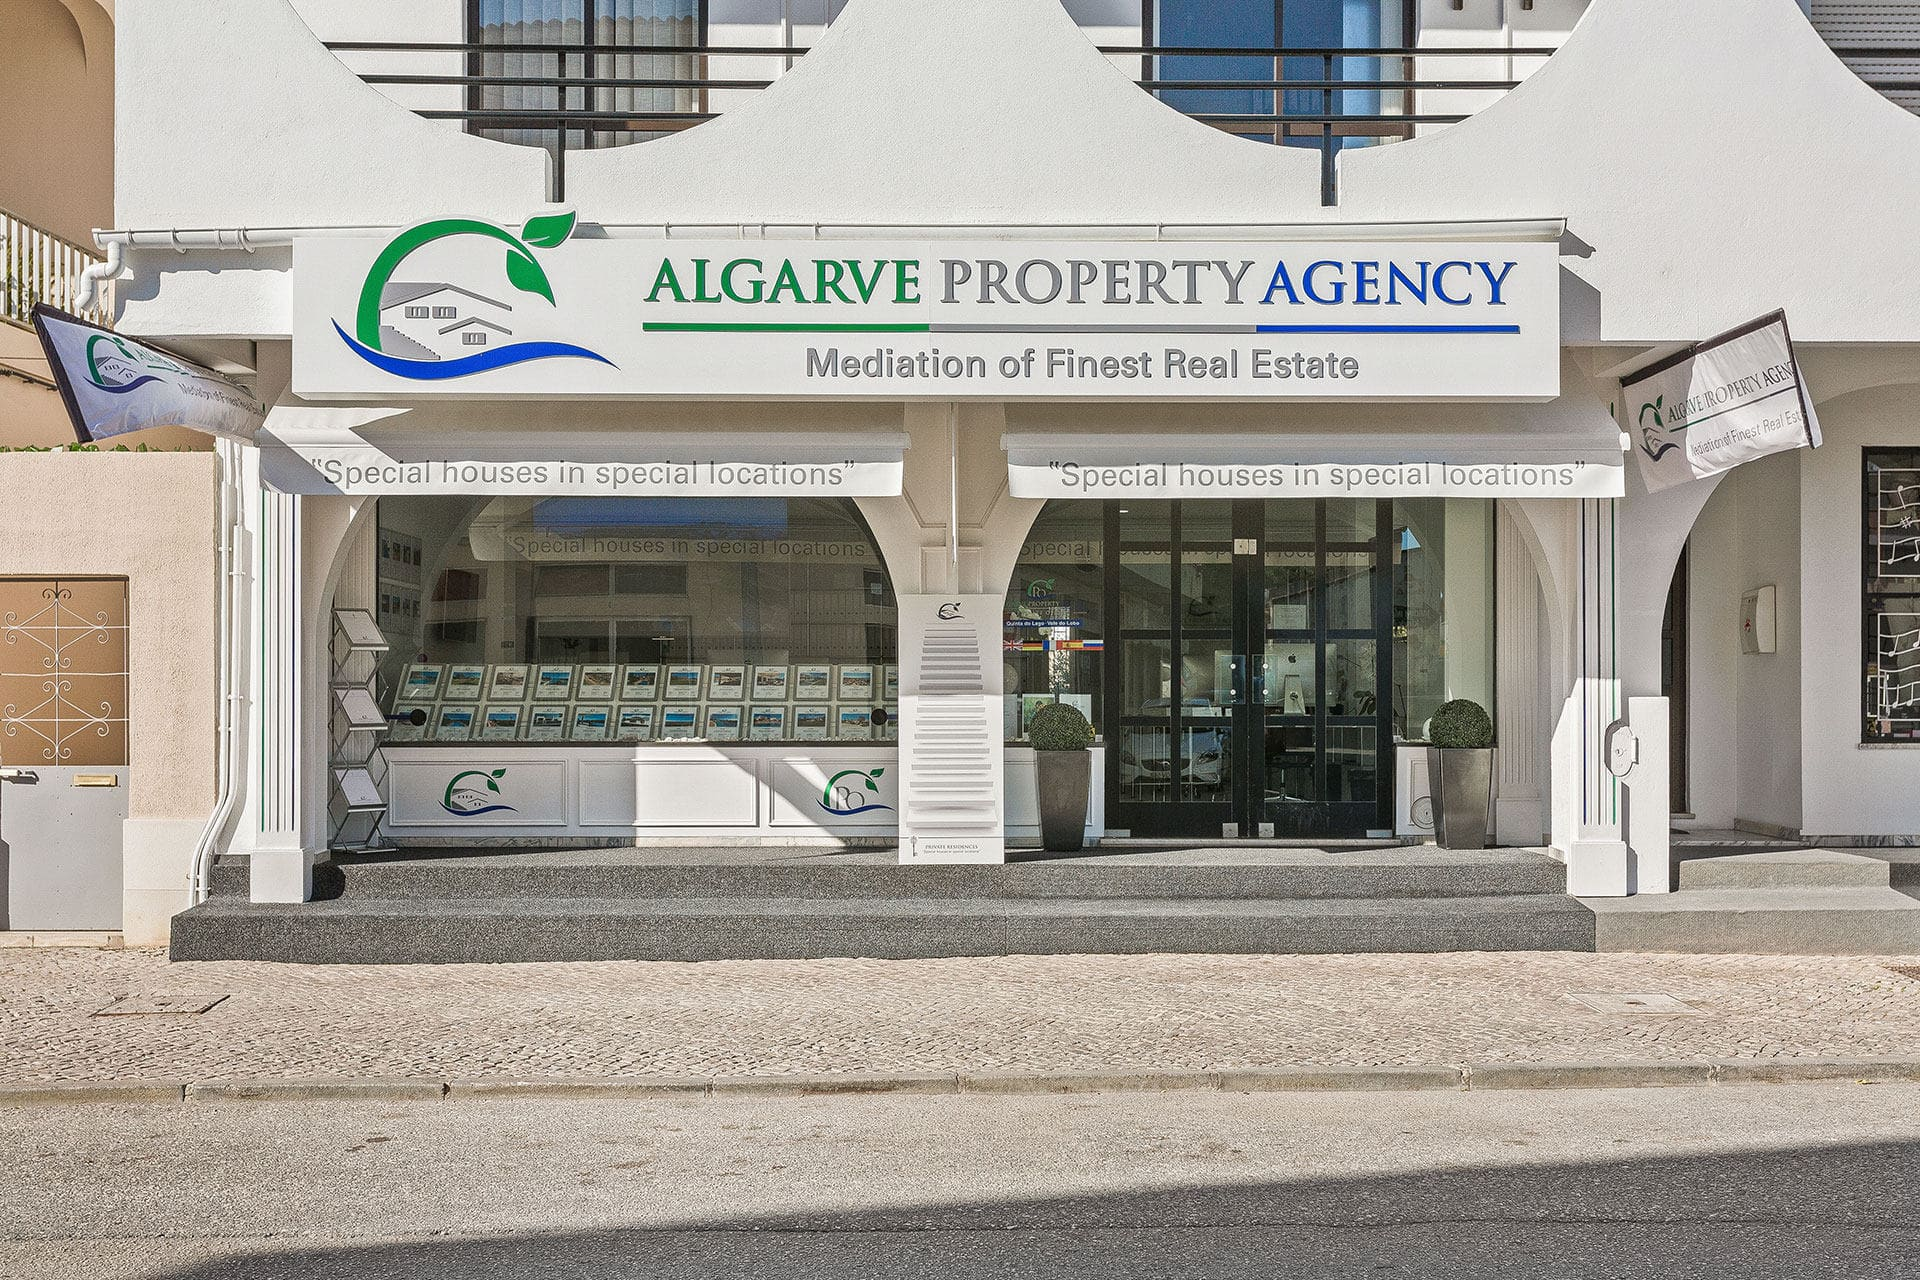 Algarve Property Agency